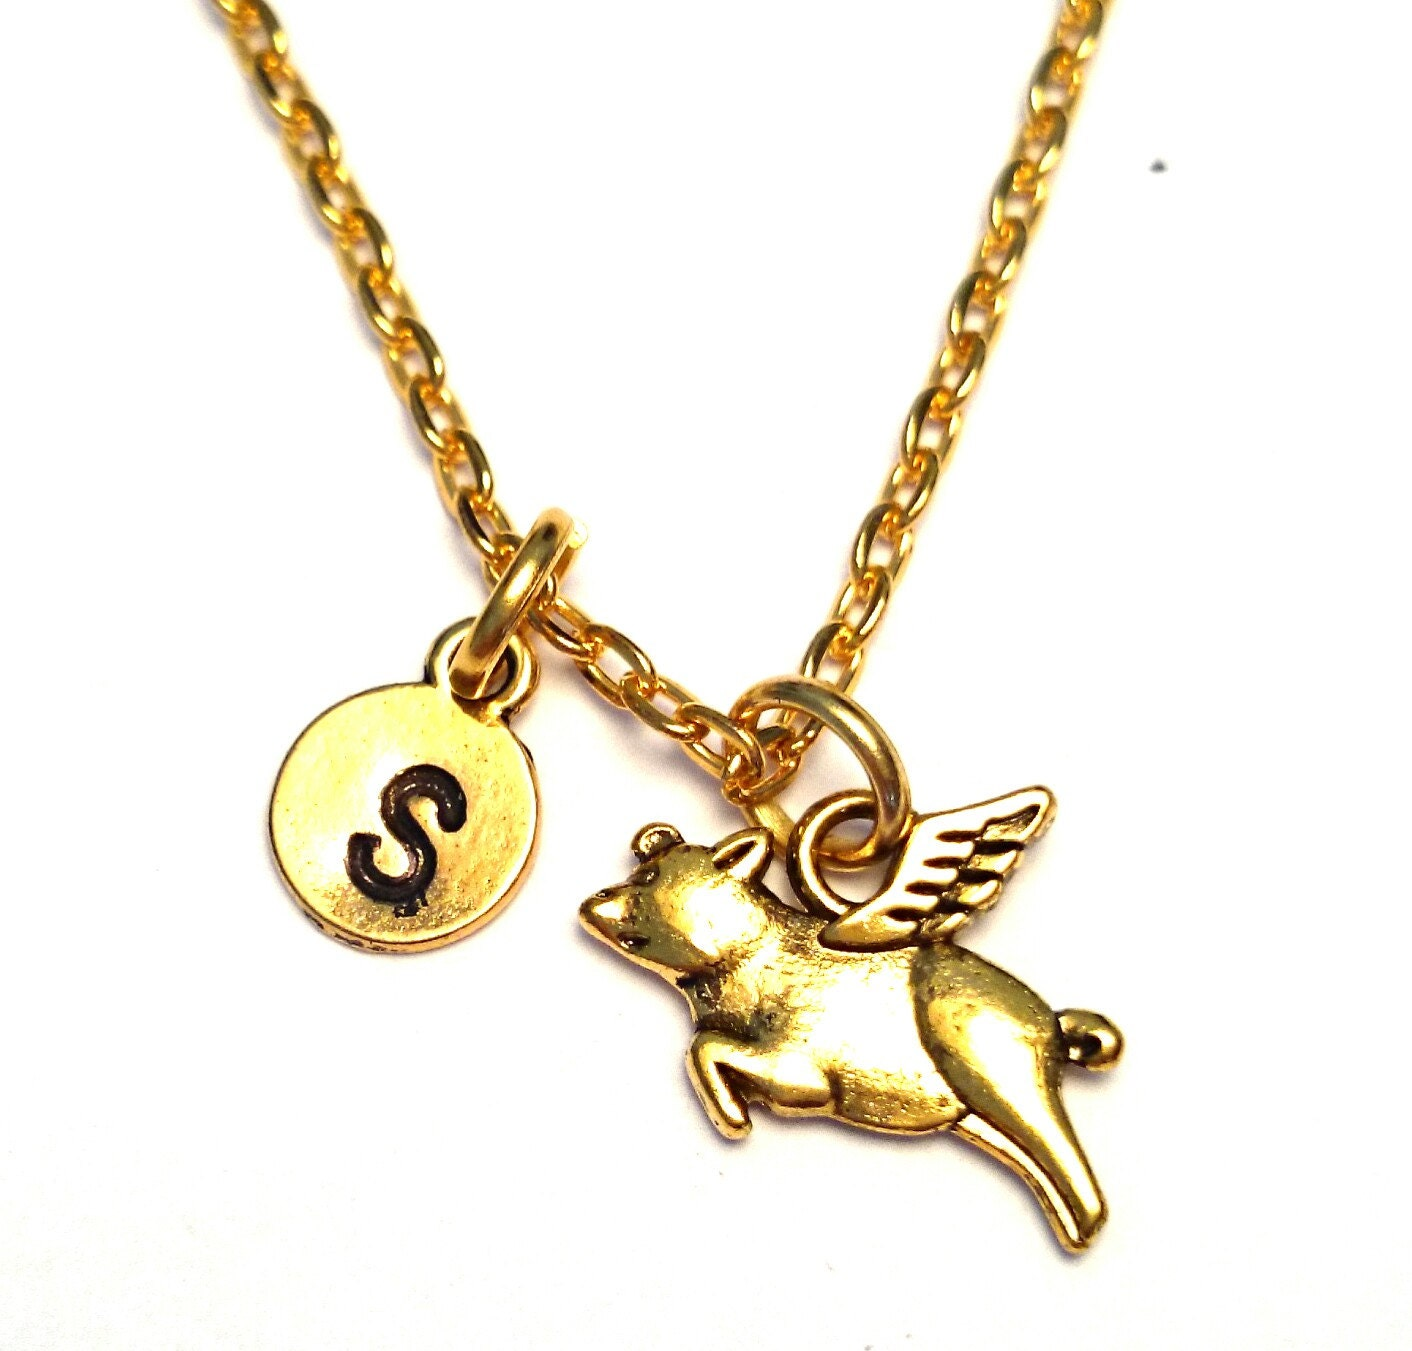 Pig Charm Bracelet: Flying Pig Necklace Flying Pig Jewelry Flying Pig Charm